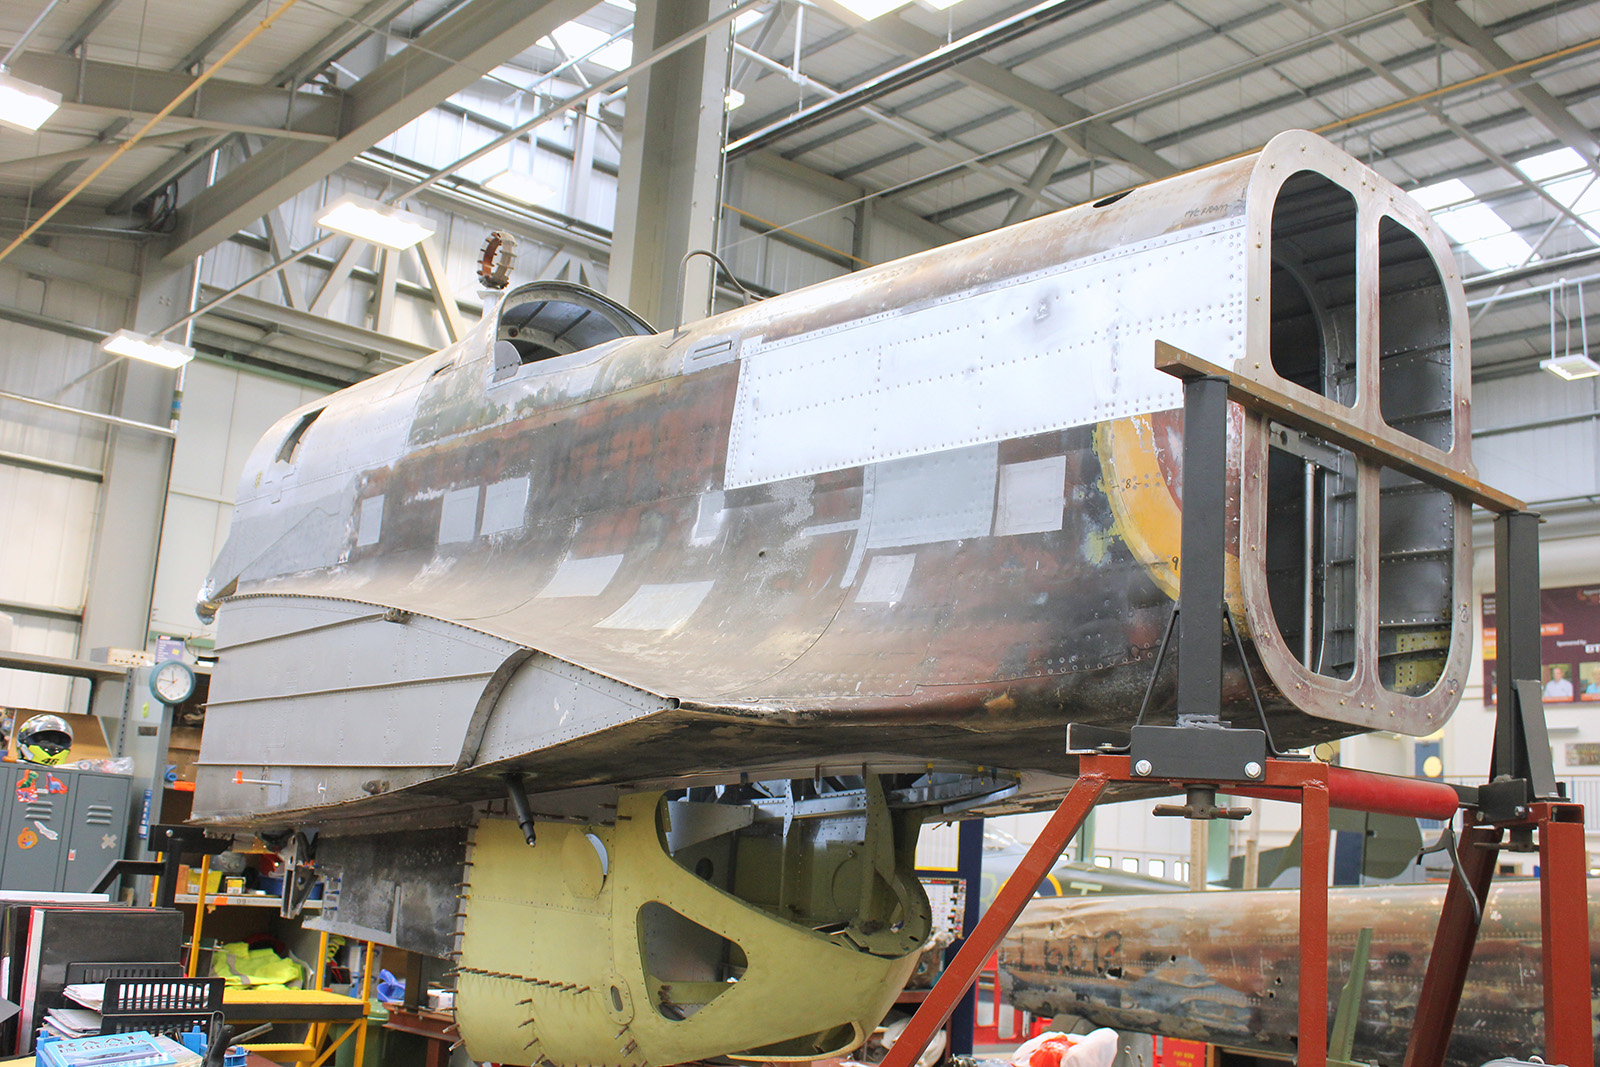 P1344's rear fuselage section in its jig and almost structurally complete. Notice the tail boom in the background. You can clearly read the serial number L6012 on its side. (photo by Geoff Jones)